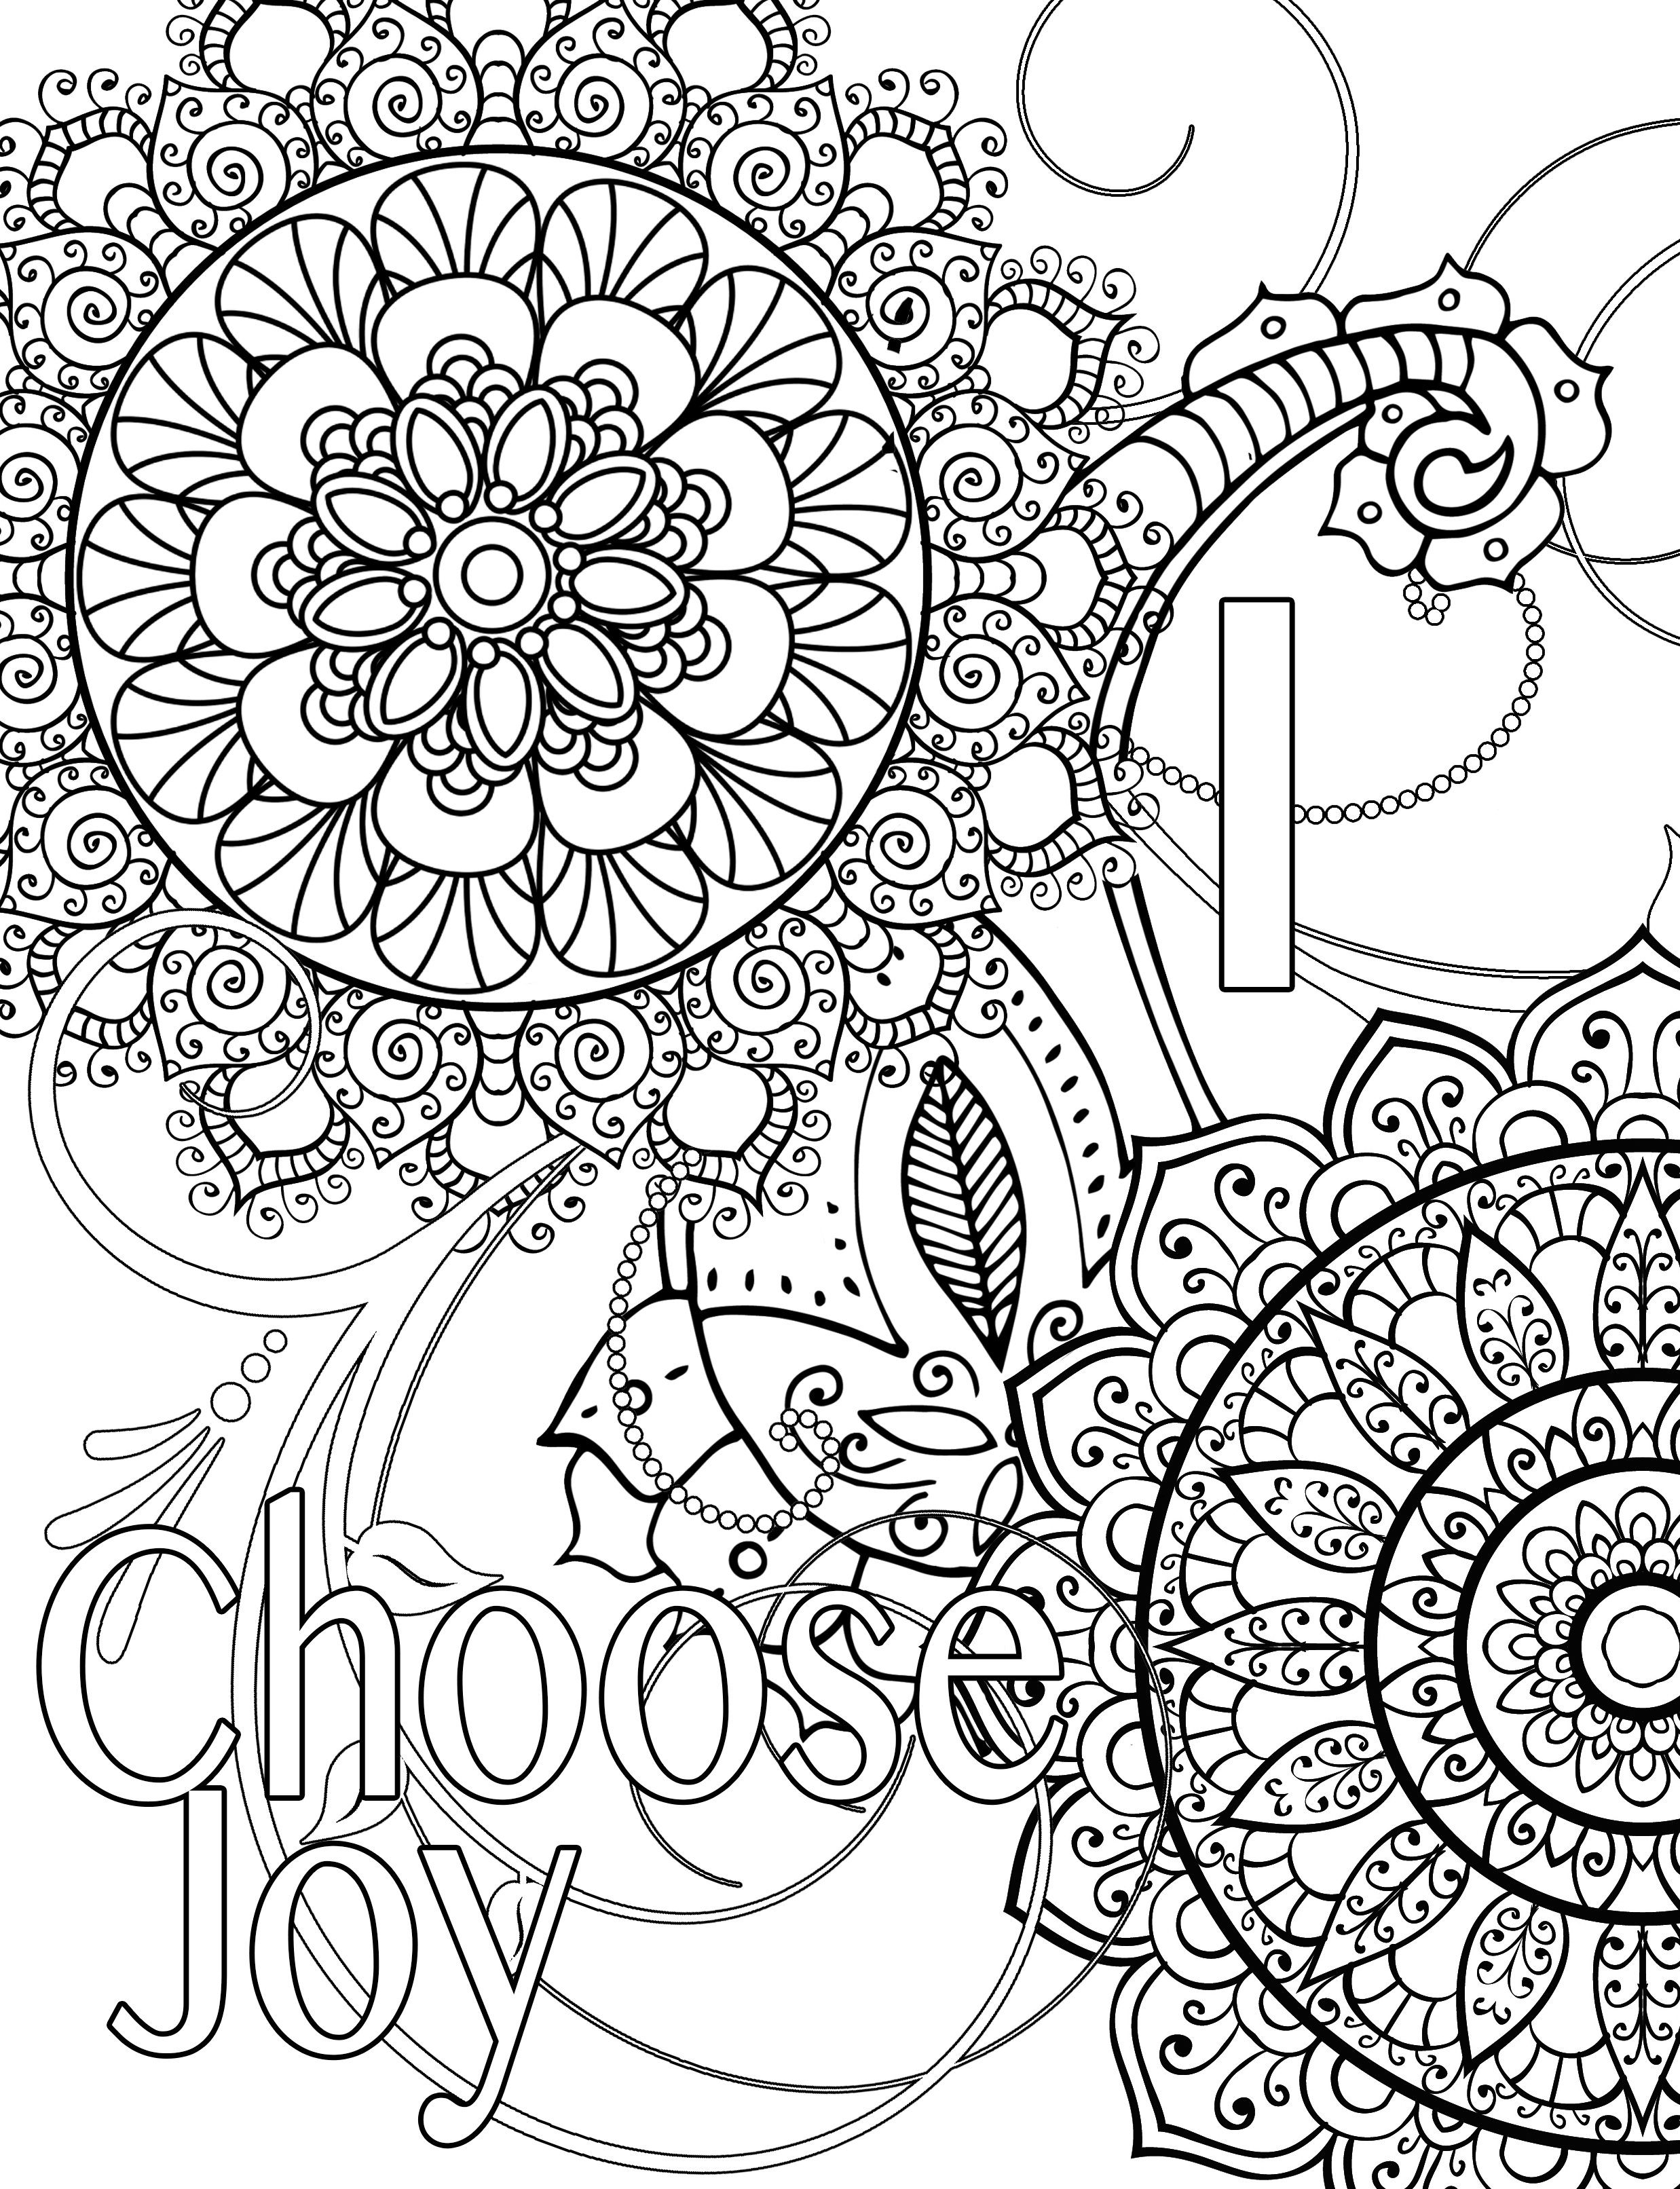 Words coloring page : I choose joy … | coloring…